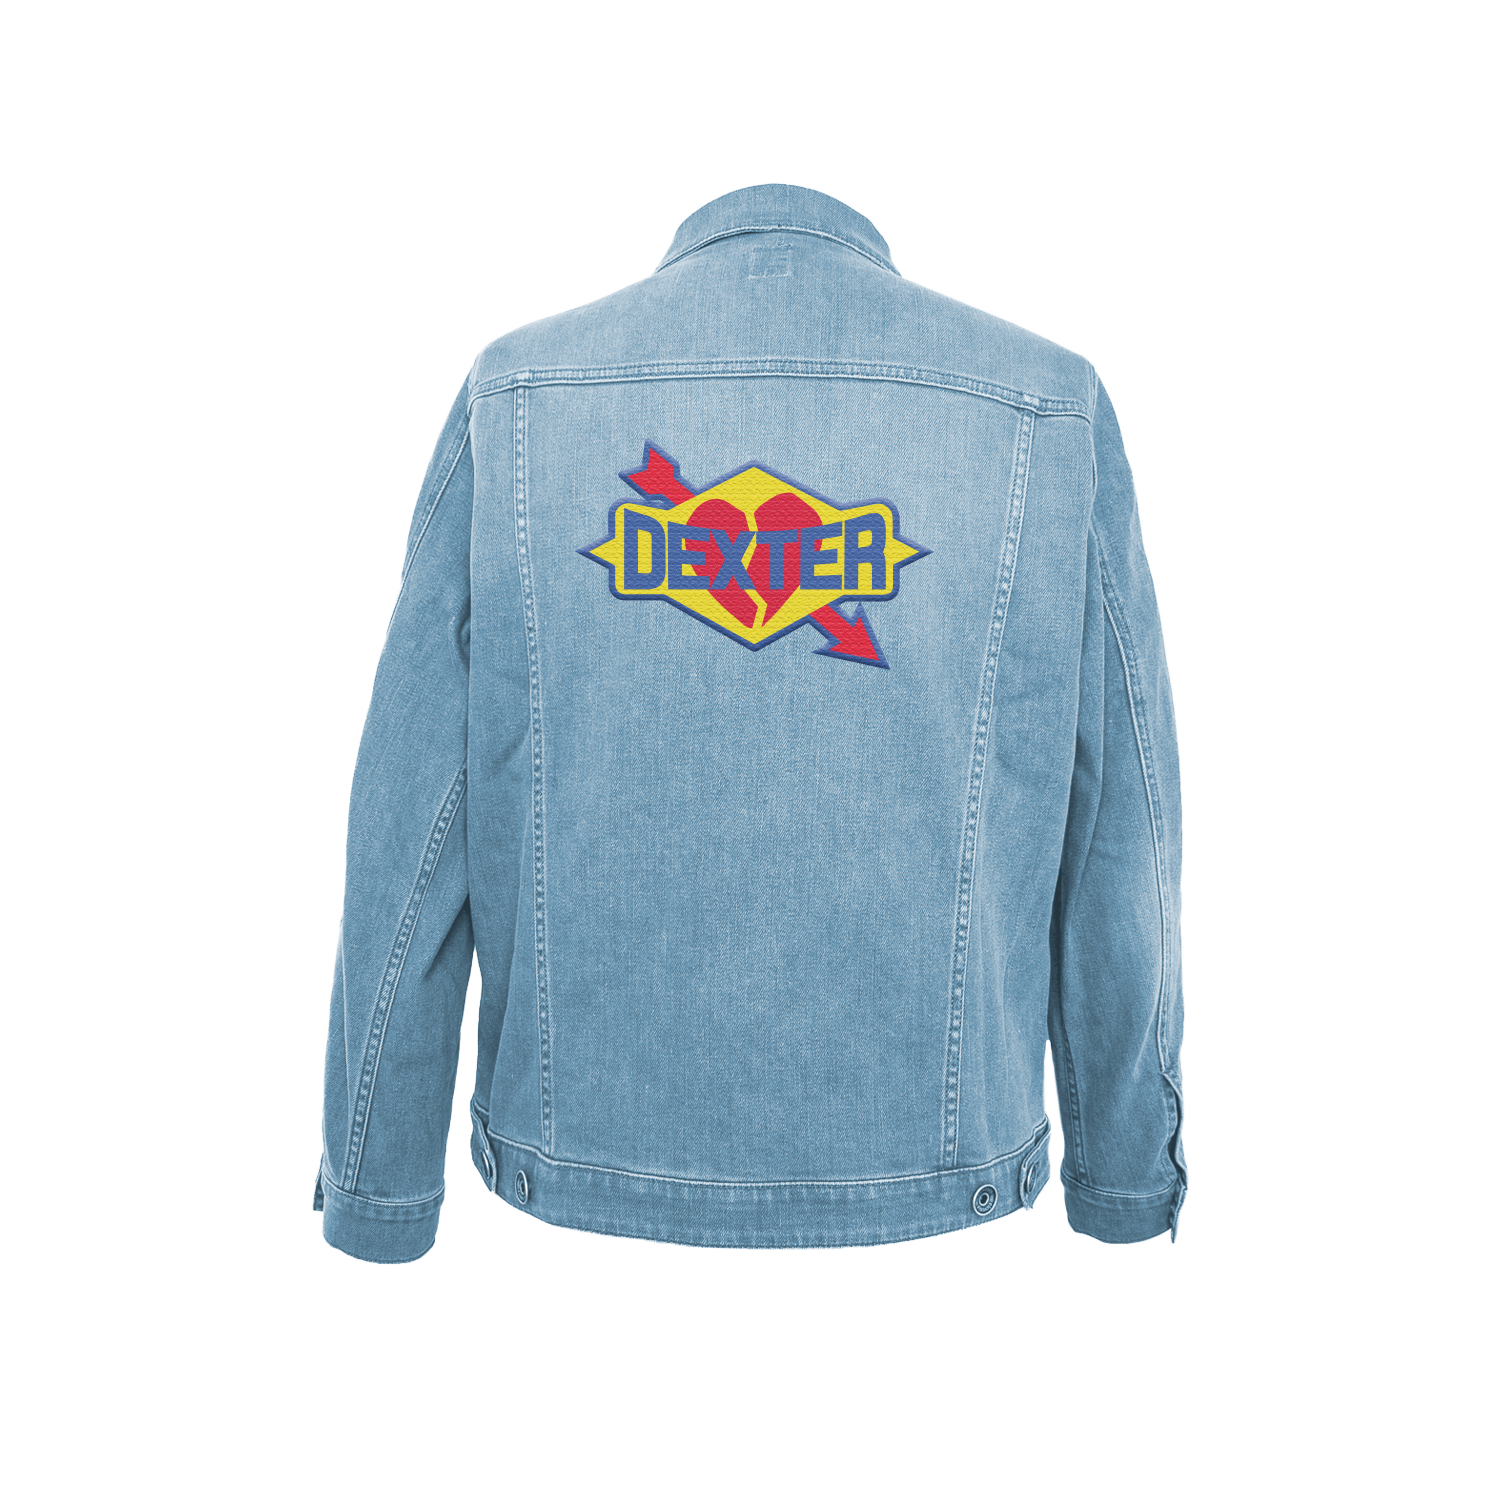 Dexter Denim Jacket - Very Limited